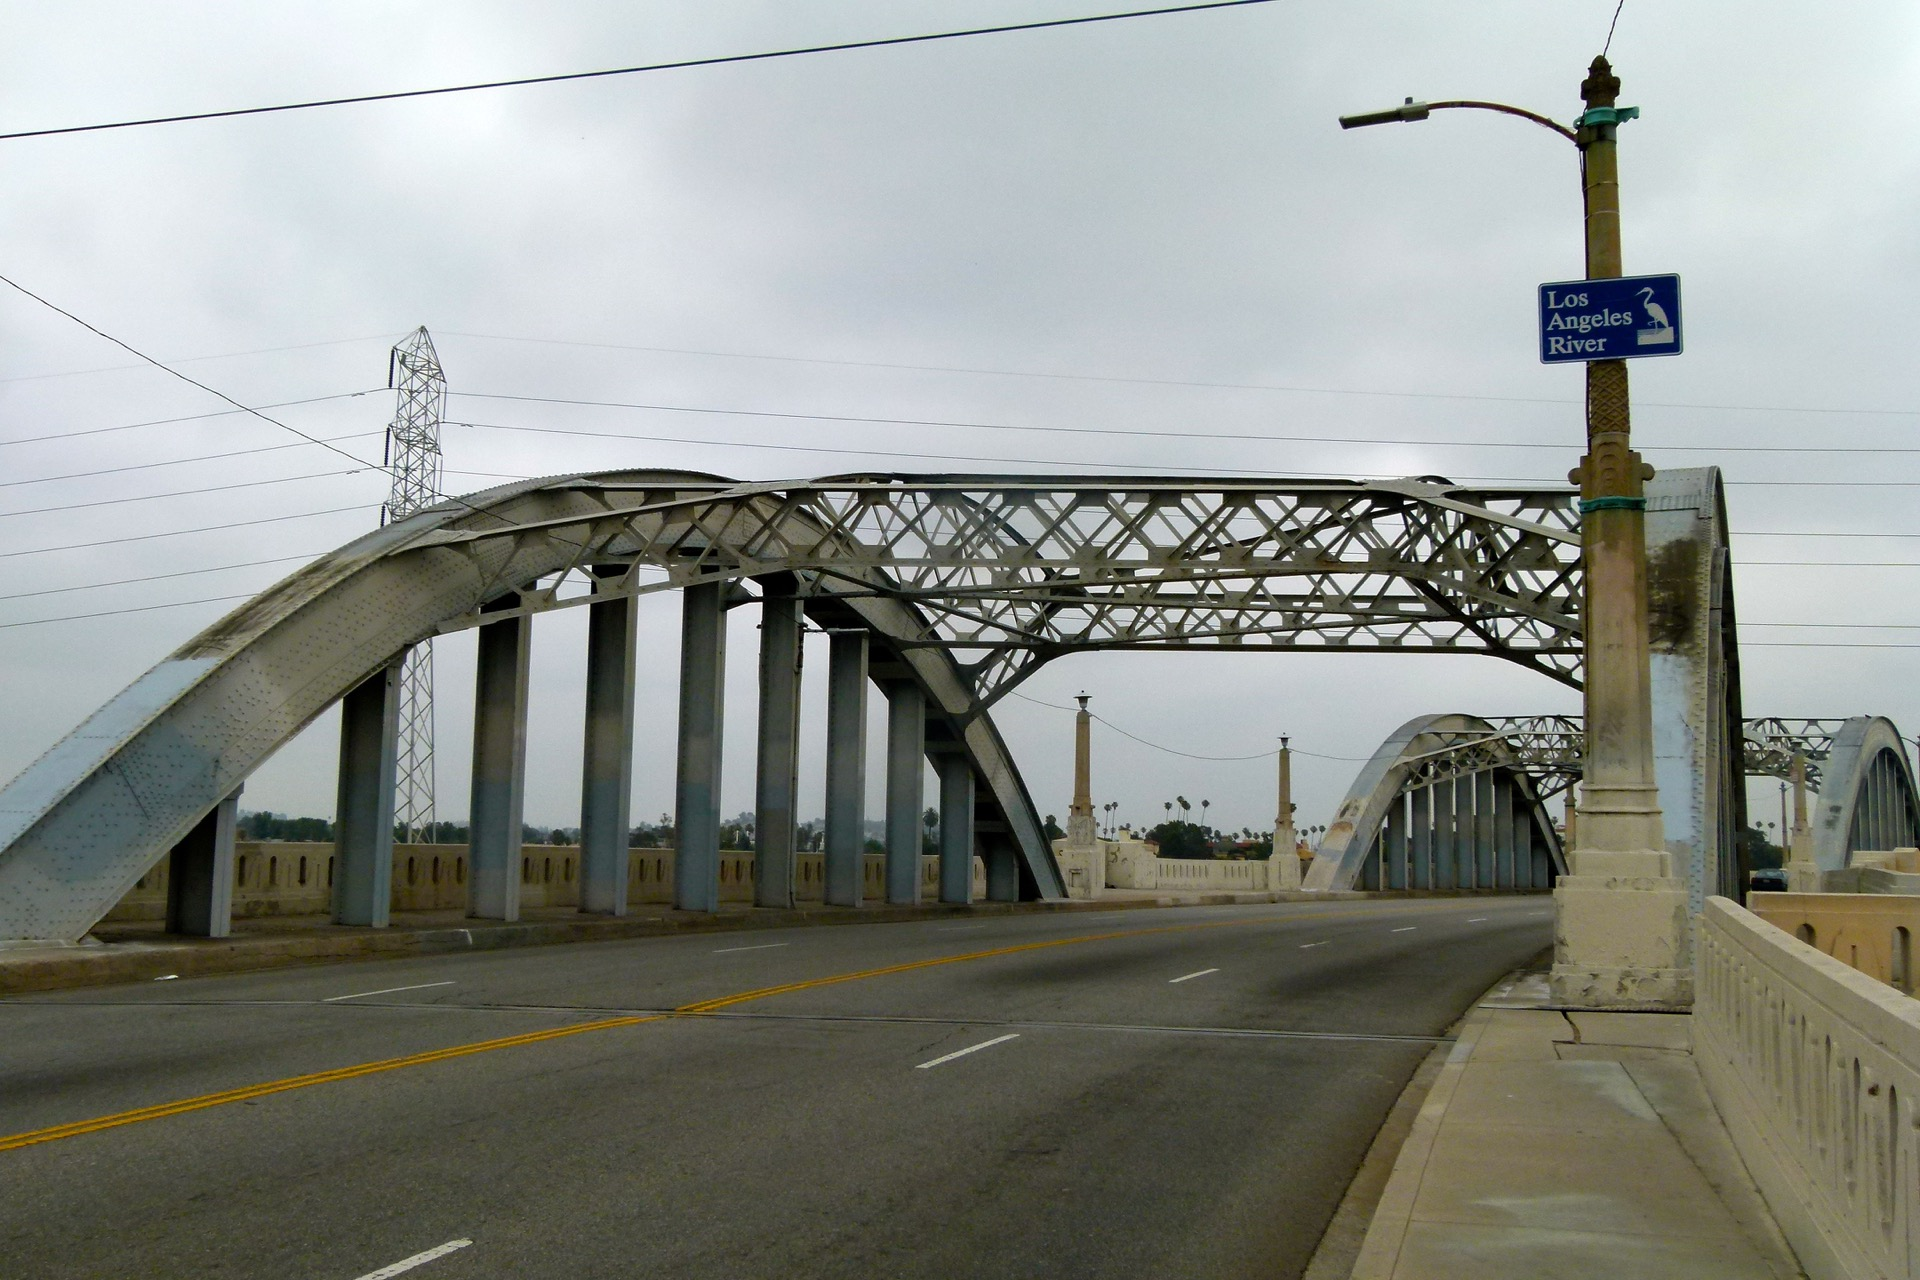 6th_street_bridge_005.jpg